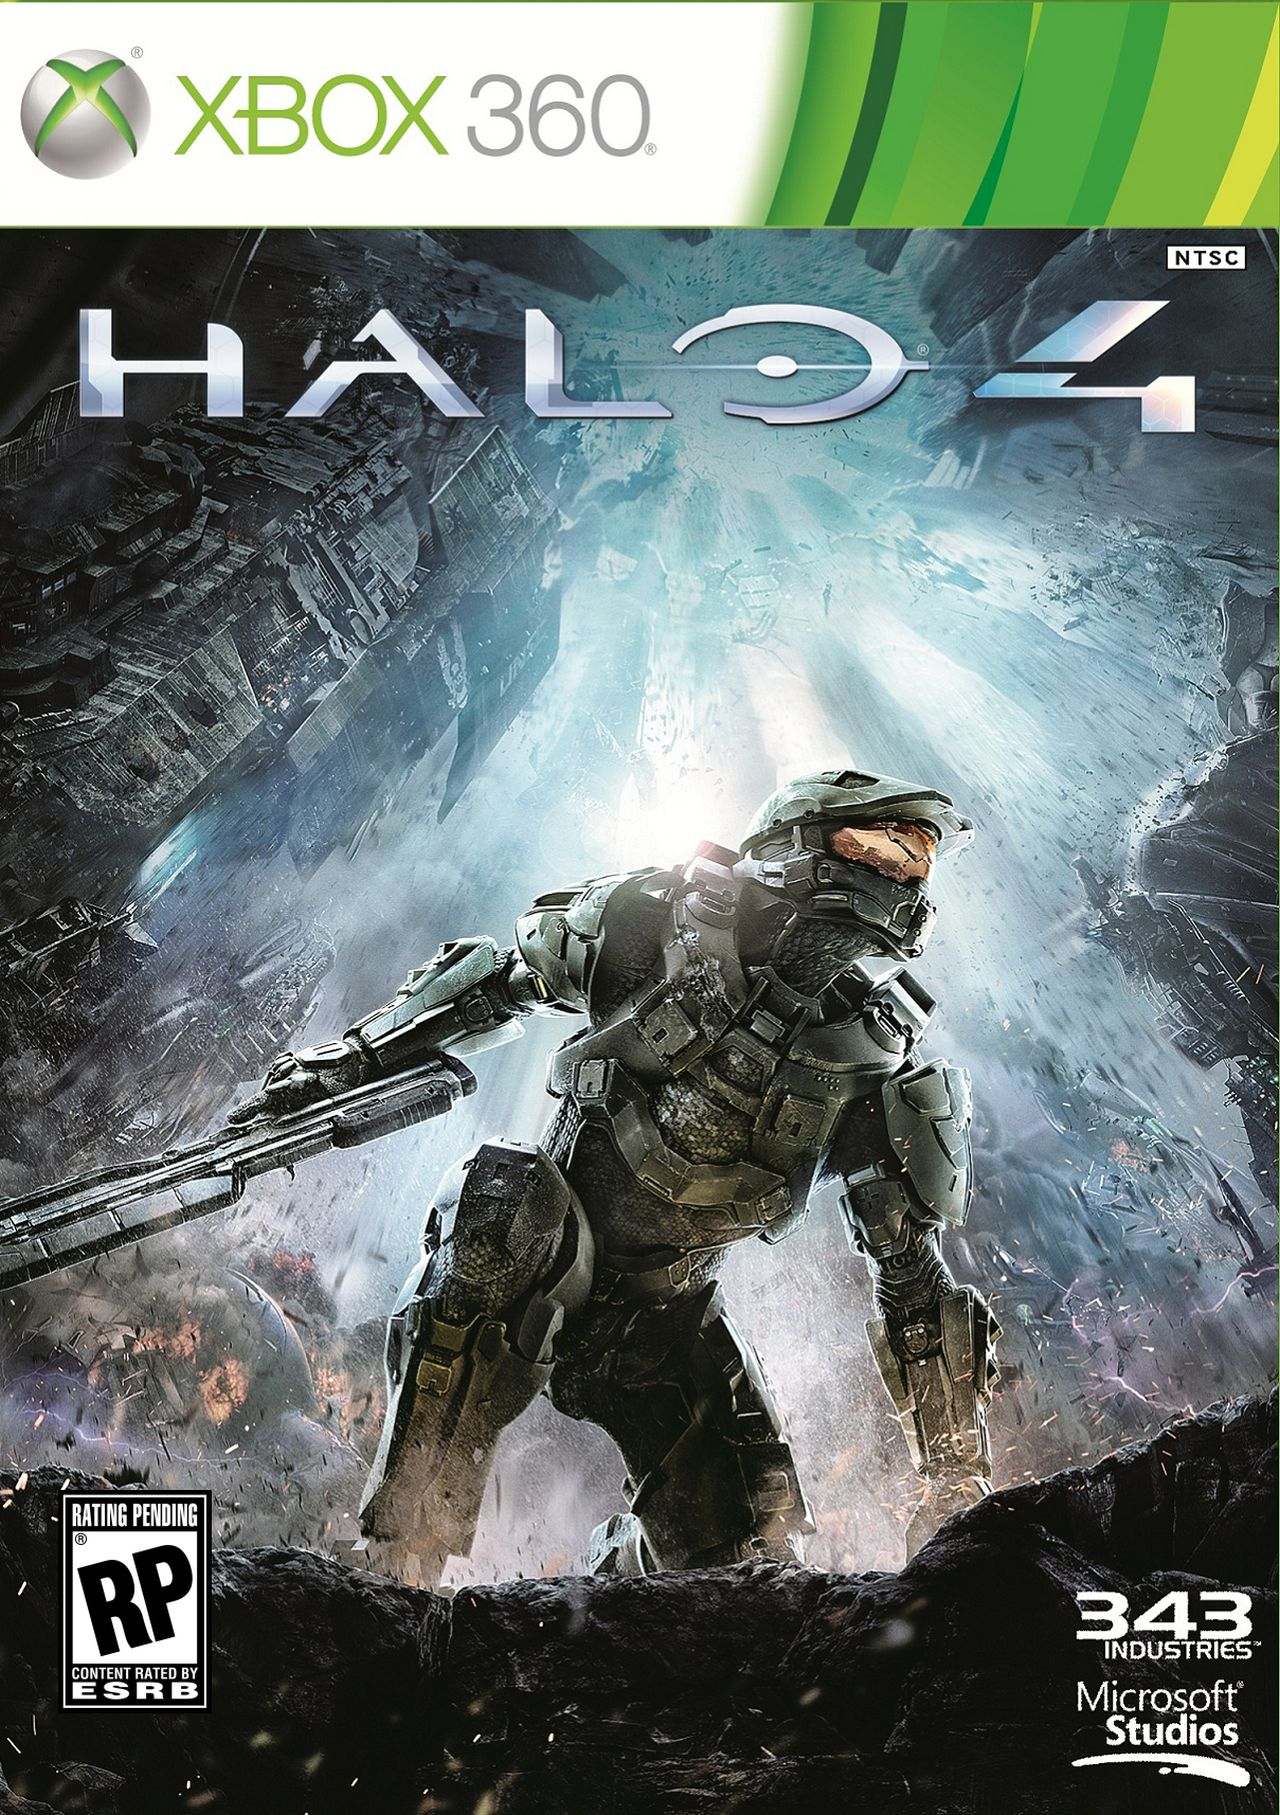 http://www.thinkhero.com/wp-content/uploads/2012/10/Halo-4-cover-xbox-360.jpg